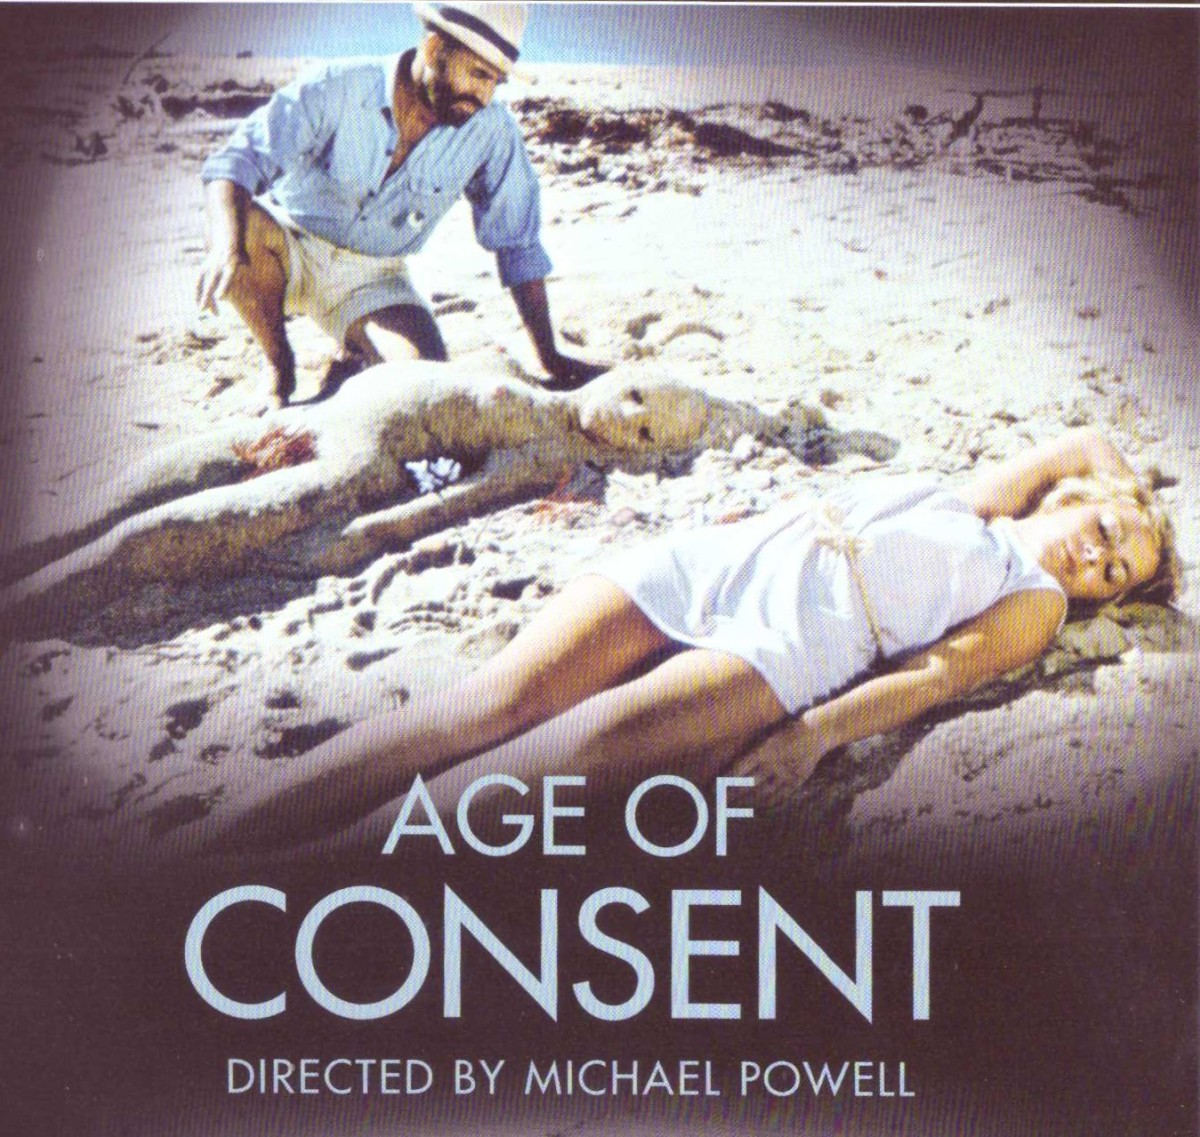 Age of Consent (1969) ***